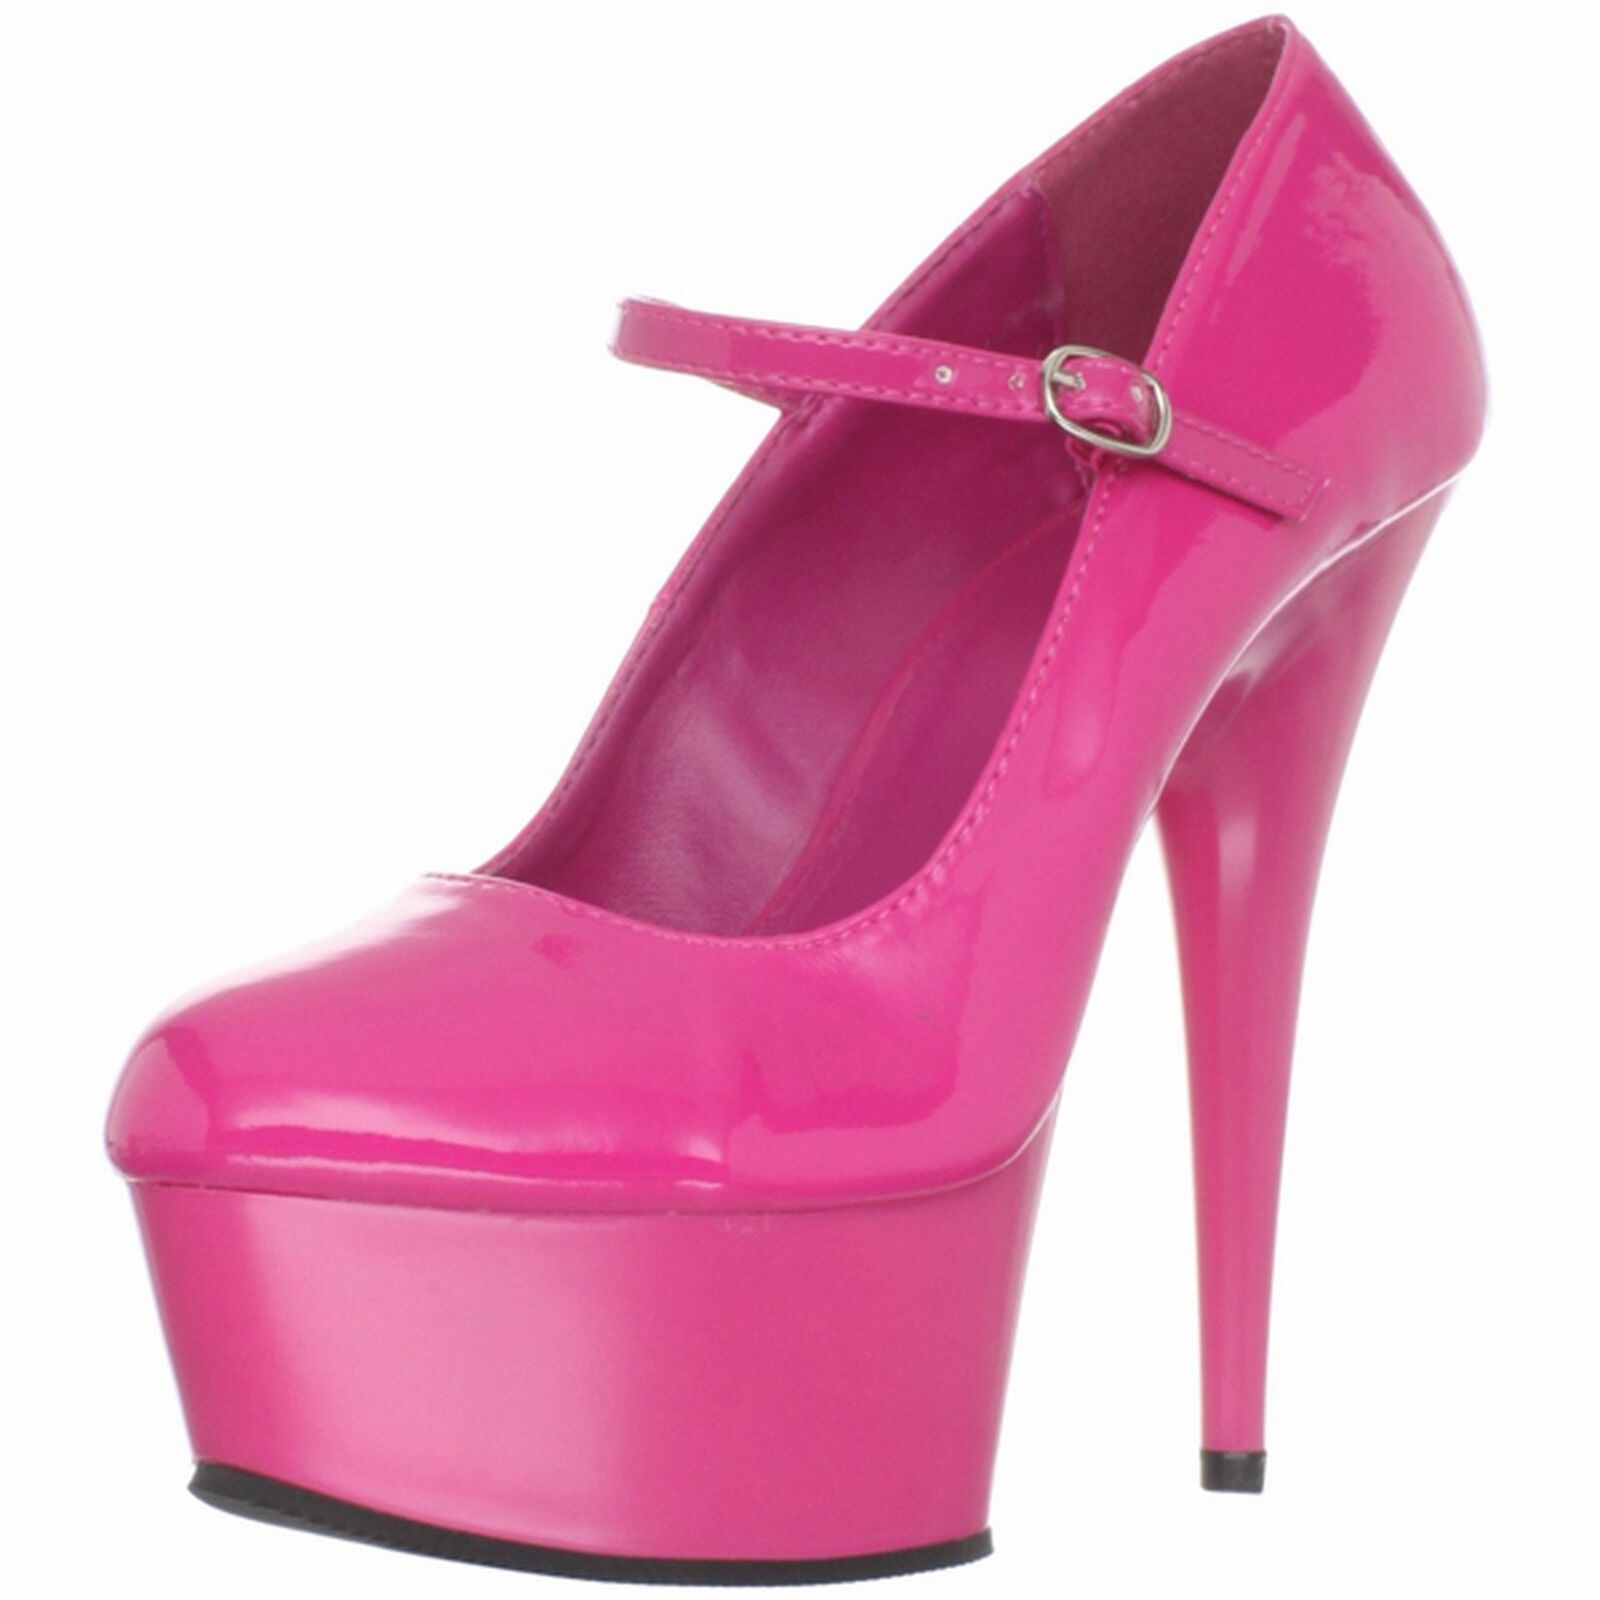 PLEASER Patent High Heel Stiletto Stiletto Stiletto Mary Jane Platform Pump DELIGHT-687 Hot Rosa 5aed1a